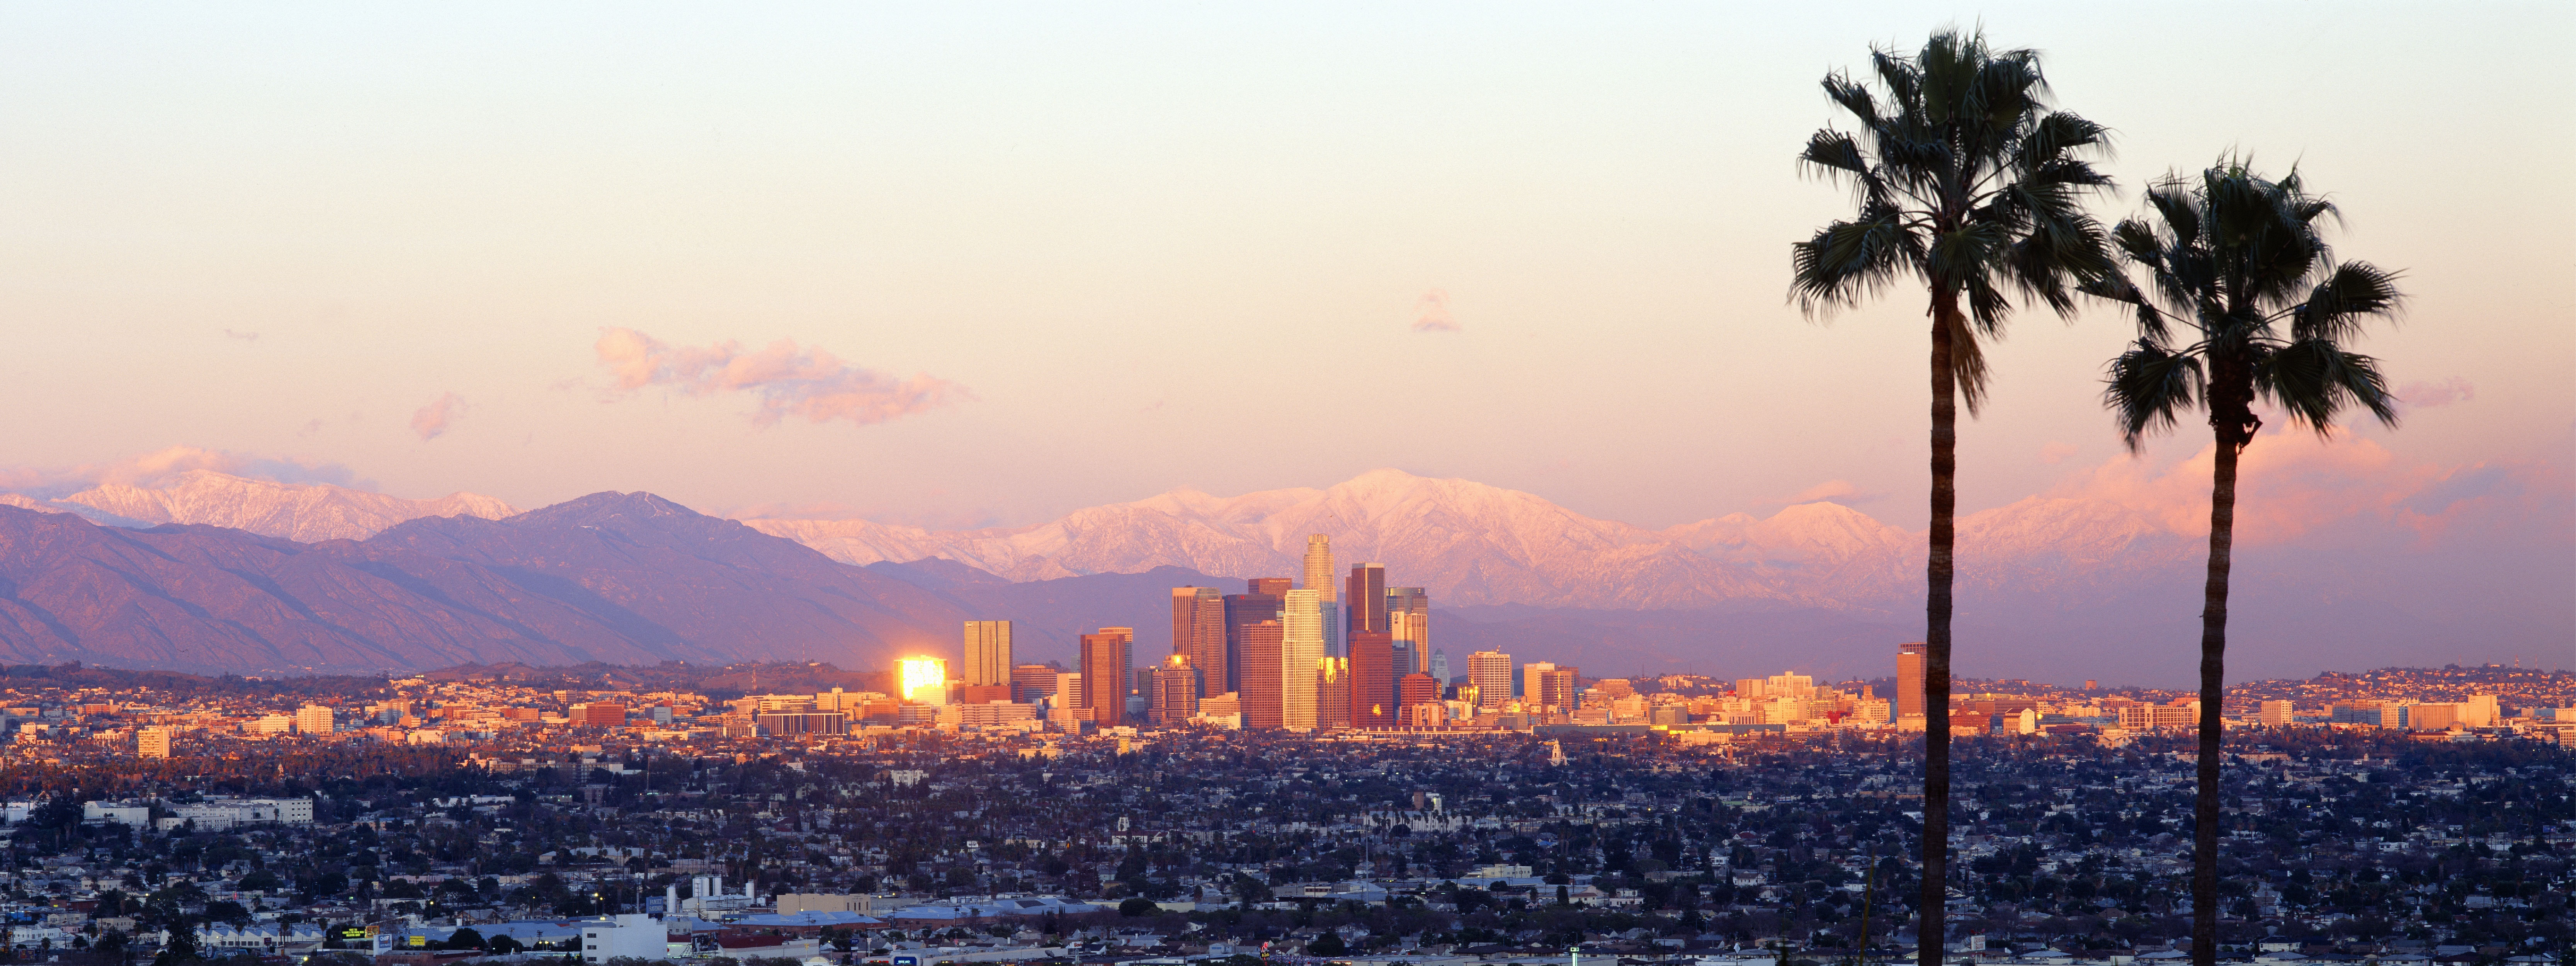 San Fernando Valley vs. San Gabriel Valley: What's the difference?